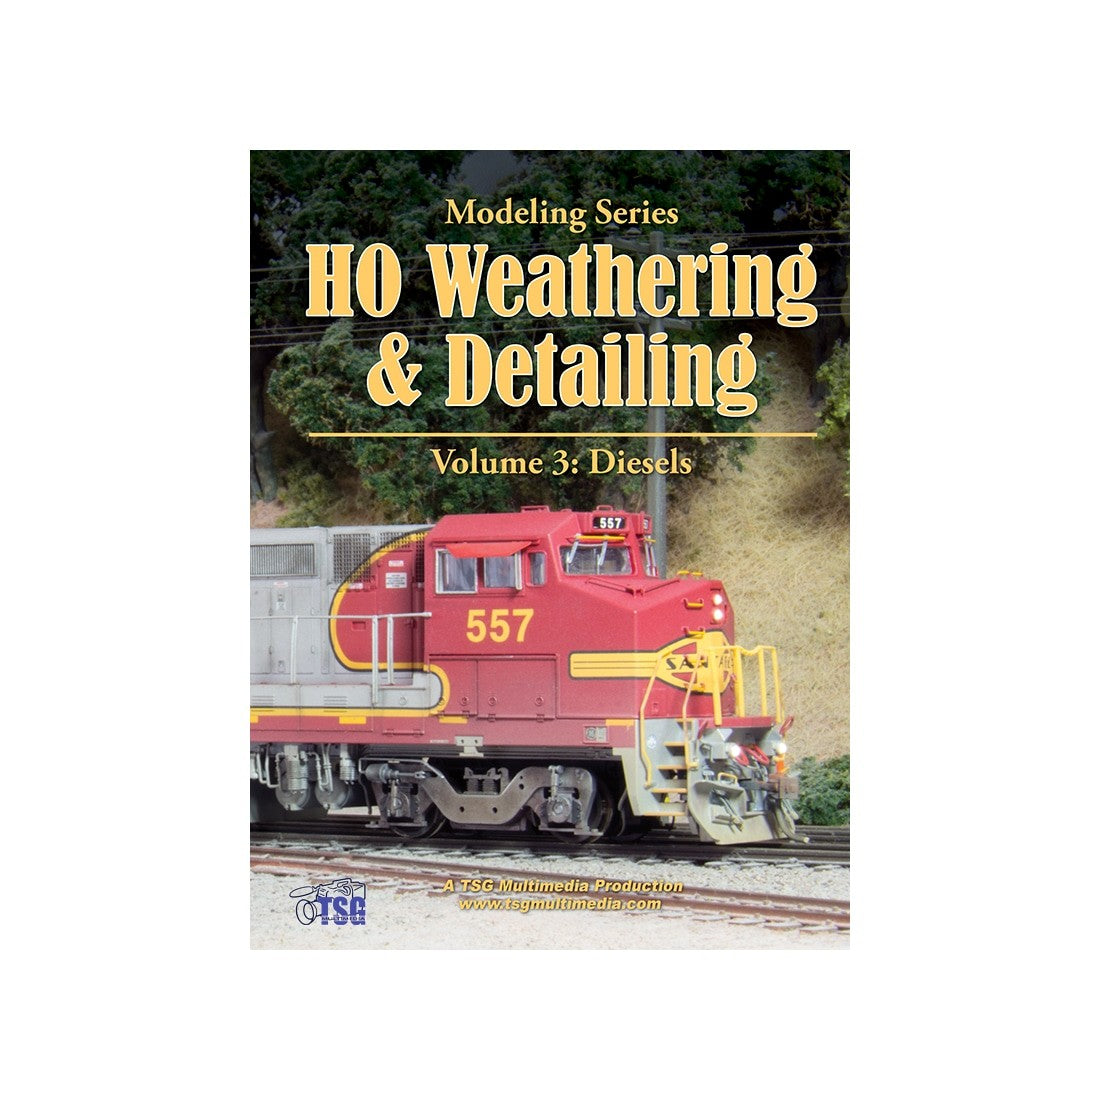 DVD: Modeling Series - HO Scale Weathering & Detailing - Volume 3